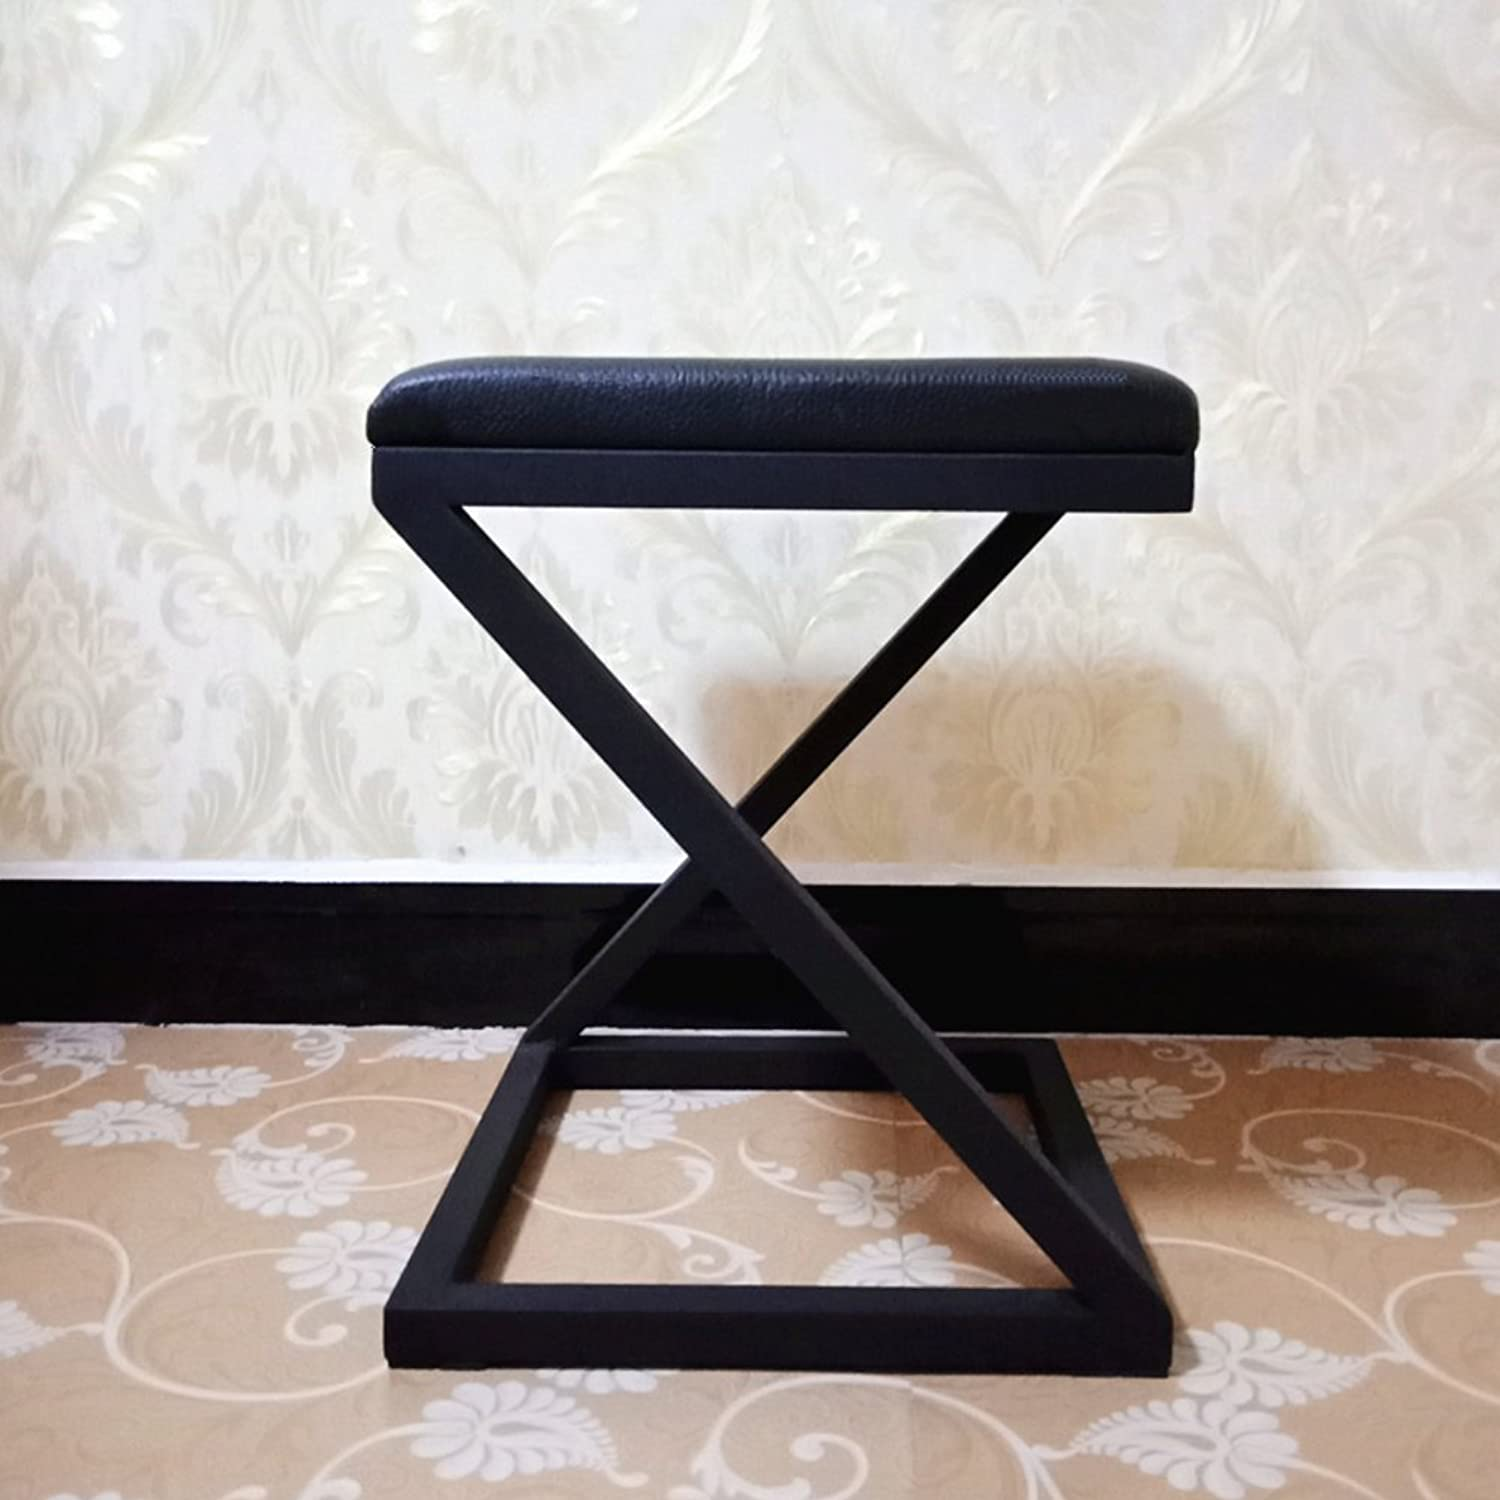 Nordic Style Leather Wrought Iron Stool,Metal Multifunctional Simple Modern Minimalist Durable Easy Storage Living Room Bedroom Home Decoration Stool-E 35x35x45cm